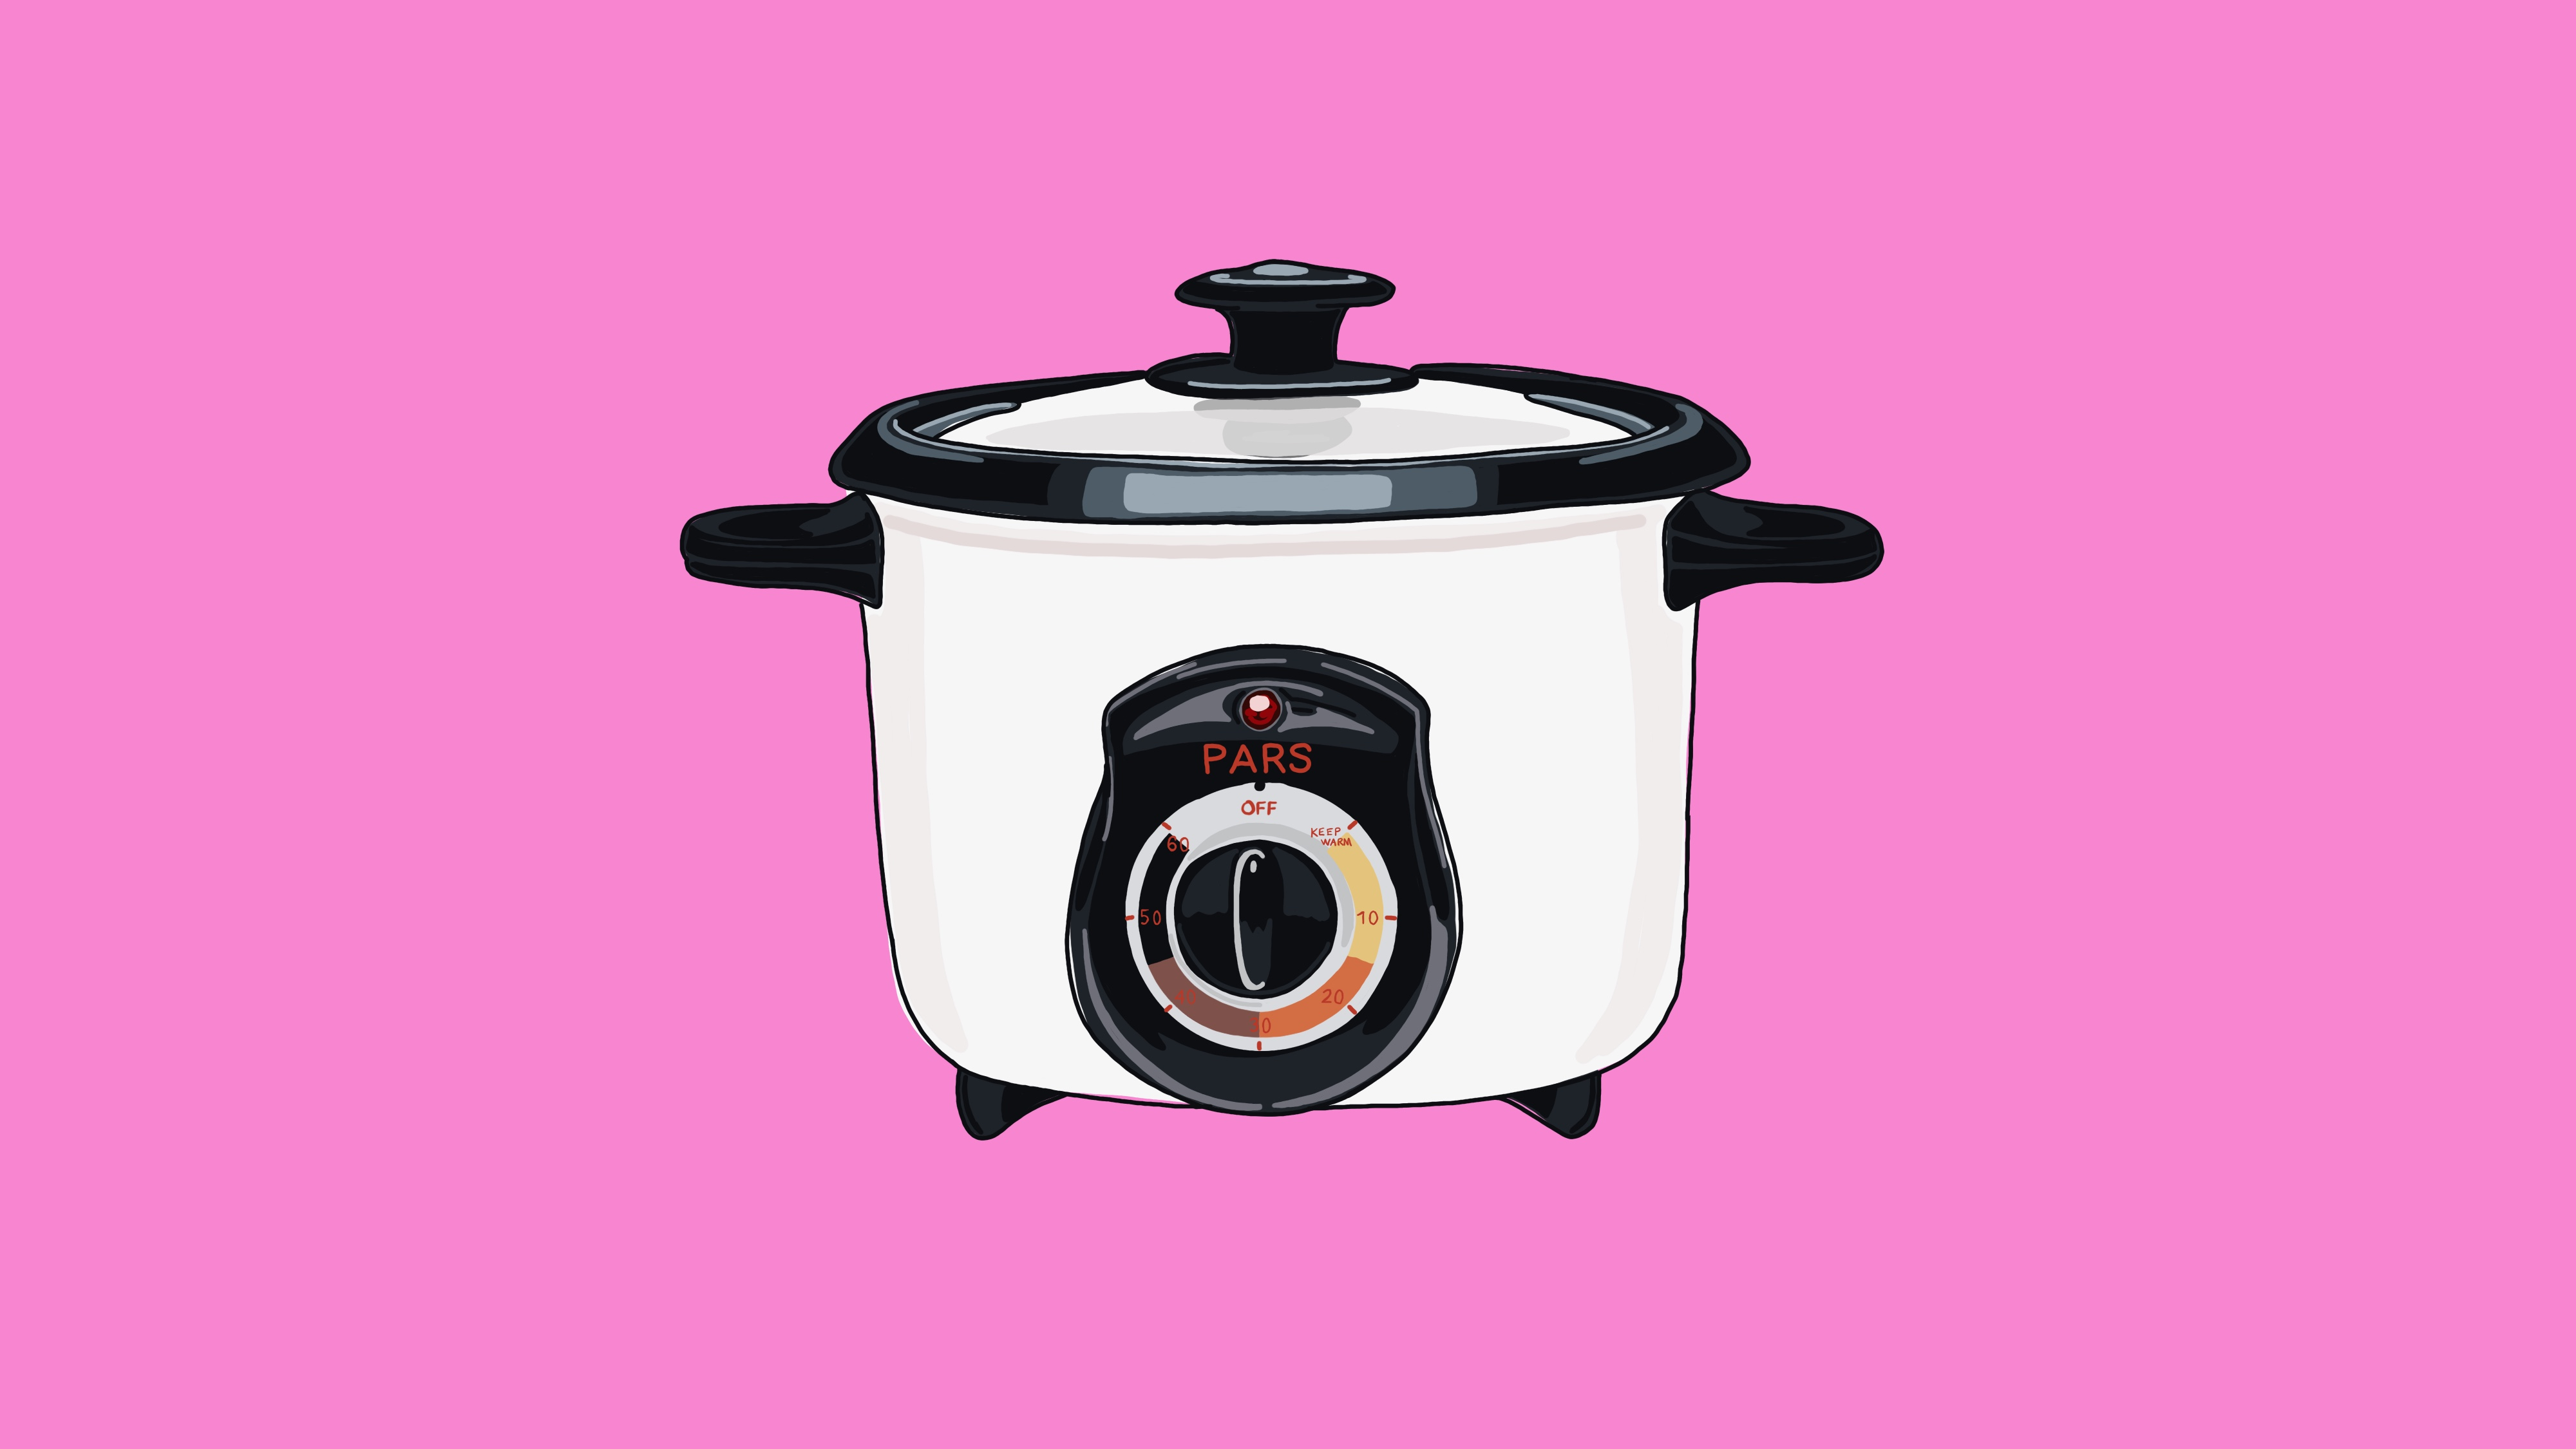 A rice cooker.